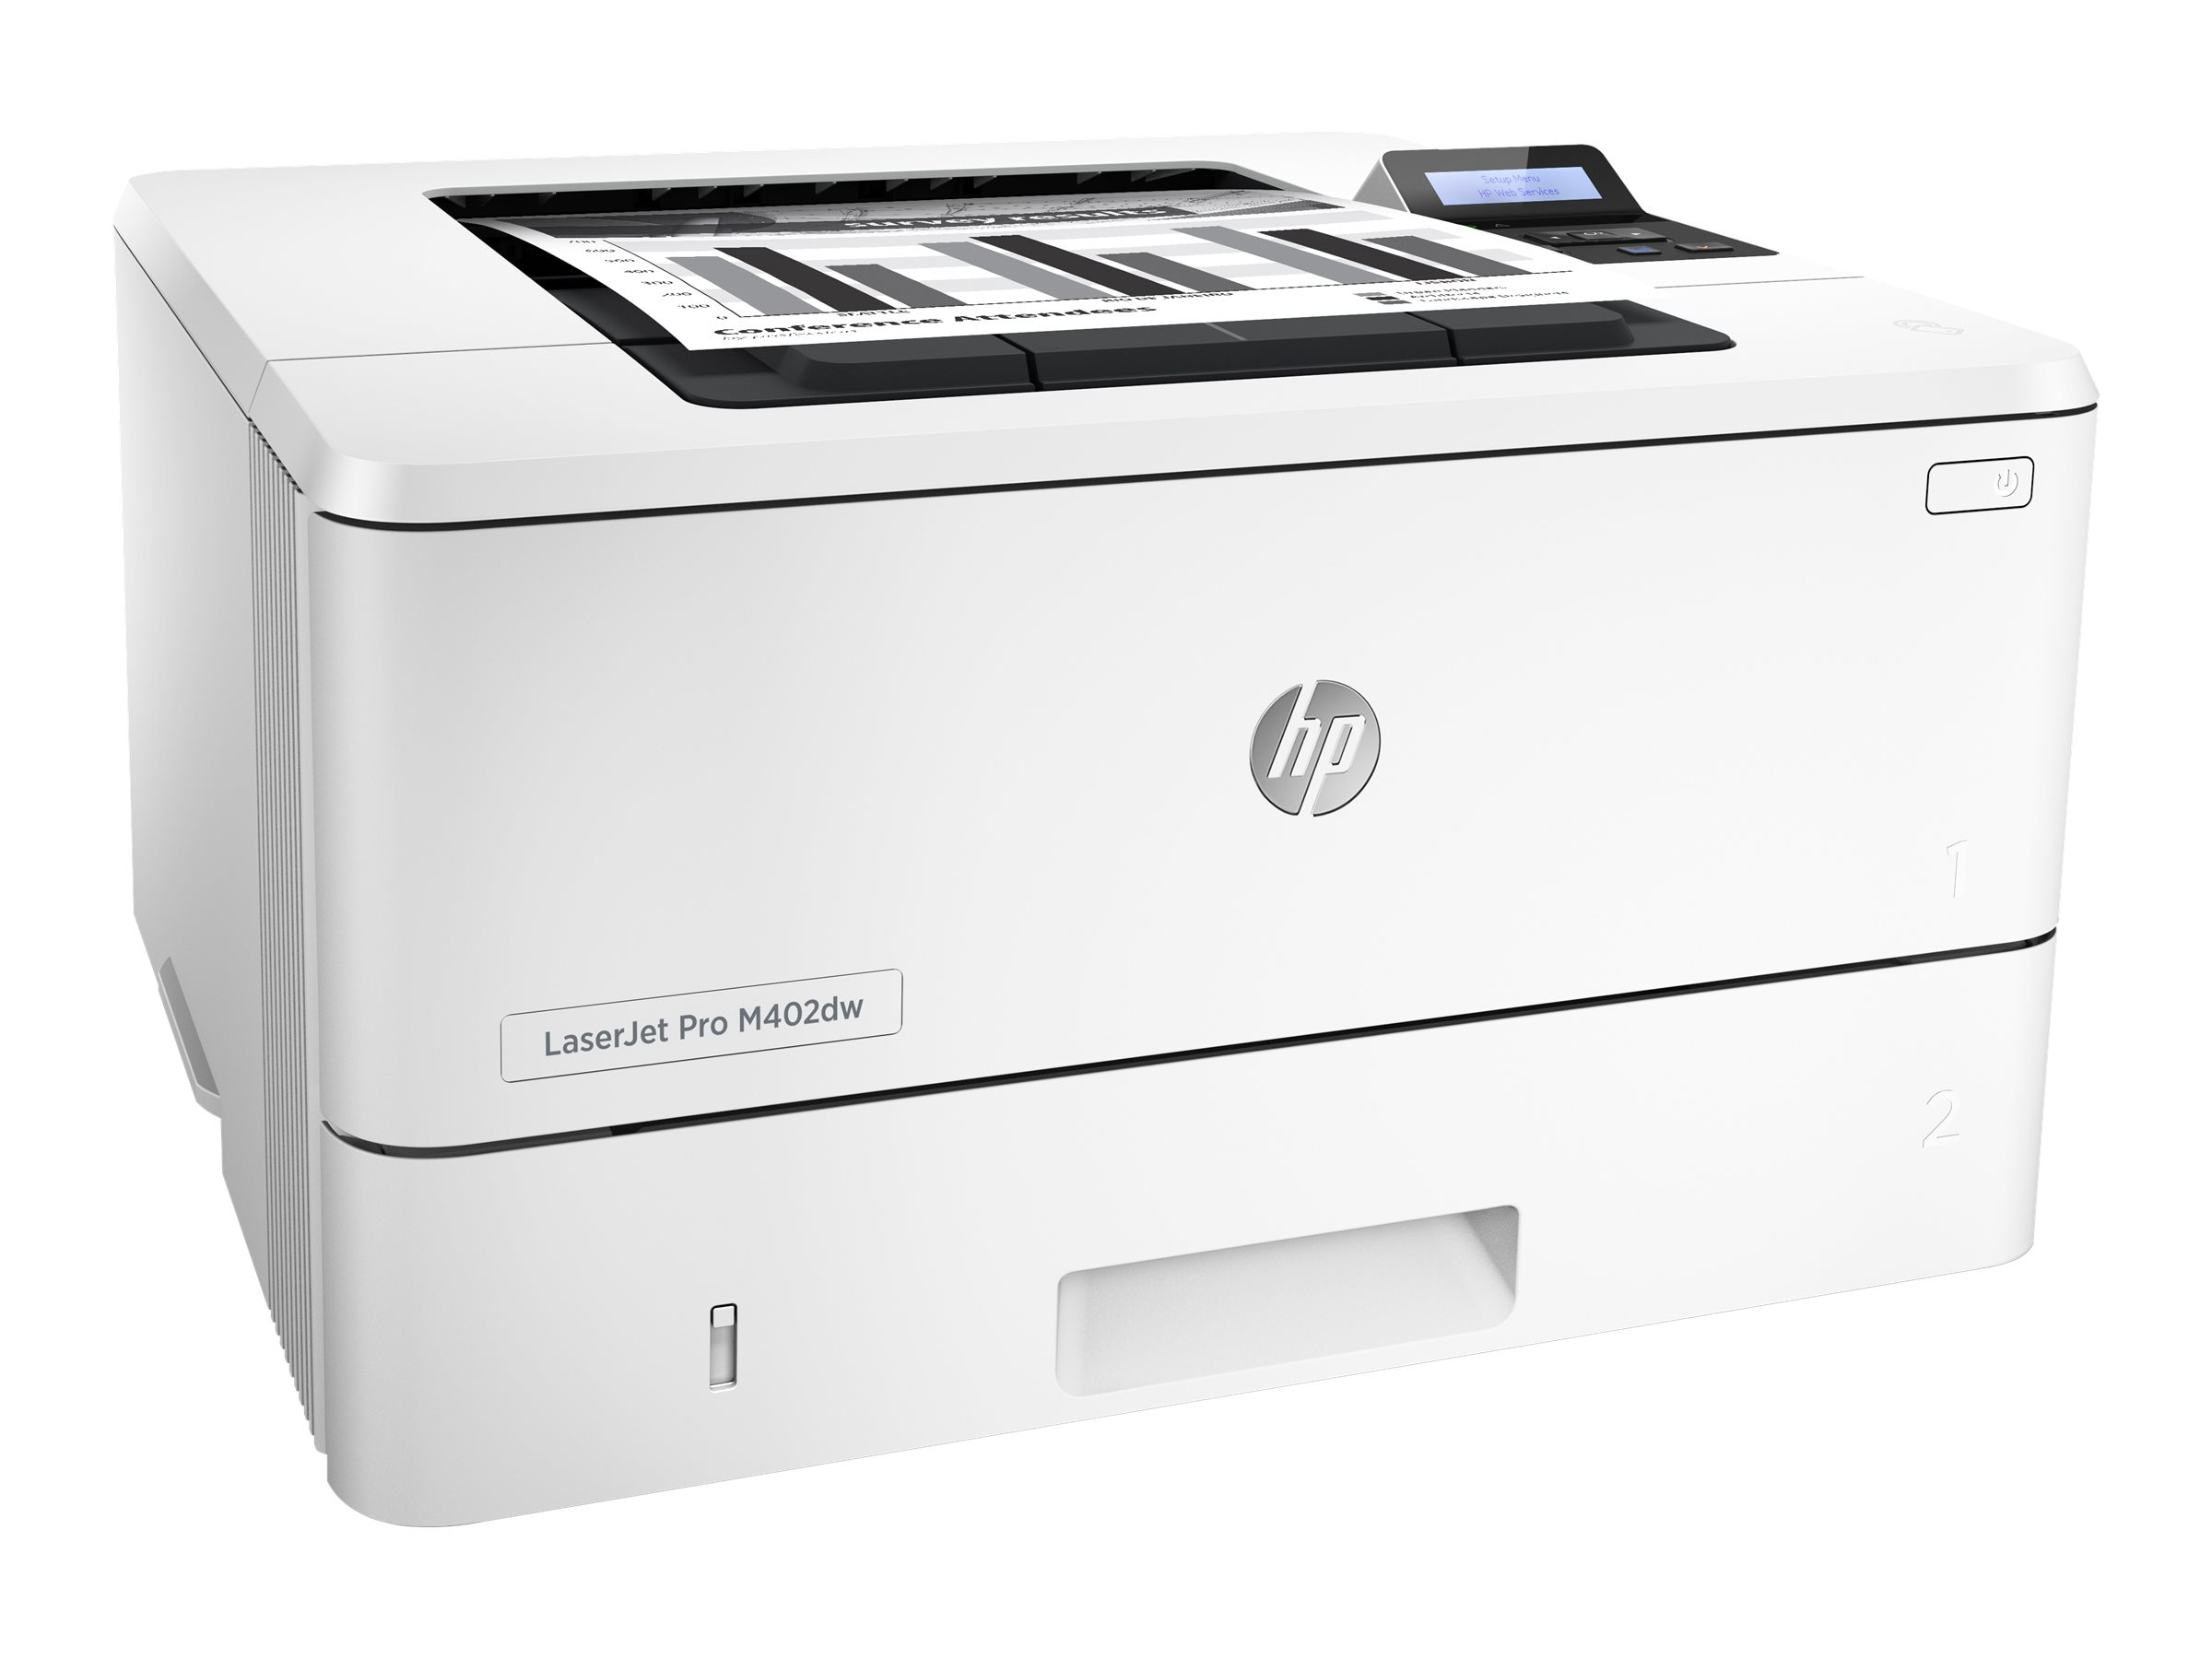 HP LaserJet Pro M402dw Printer, C5F95A#BGJ